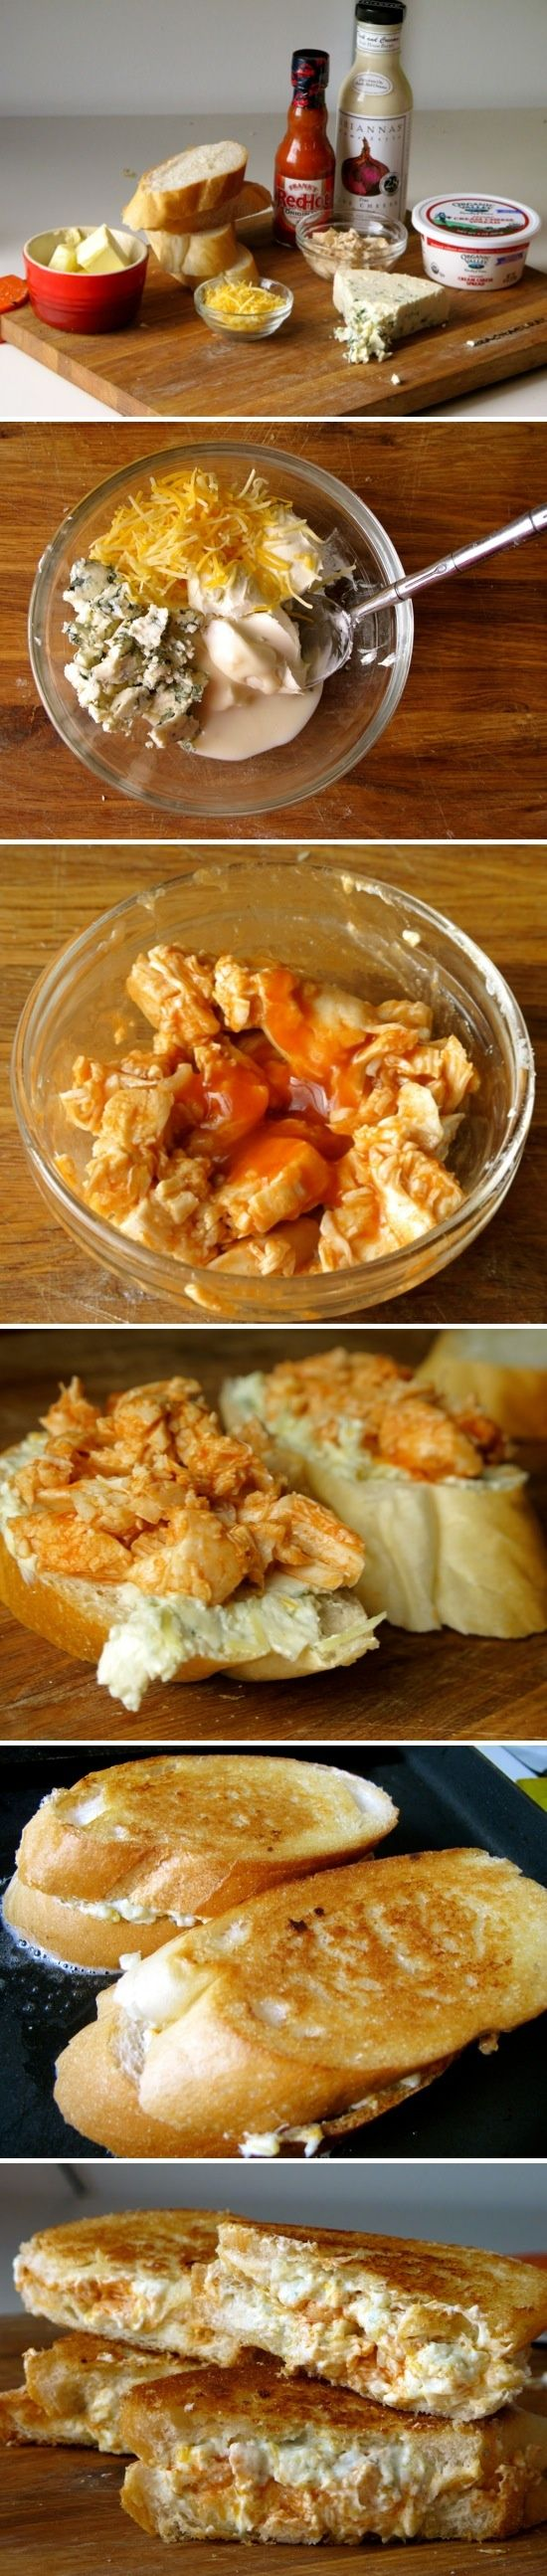 Buffalo Chicken Grilled Blue Cheese   Recipes I Need